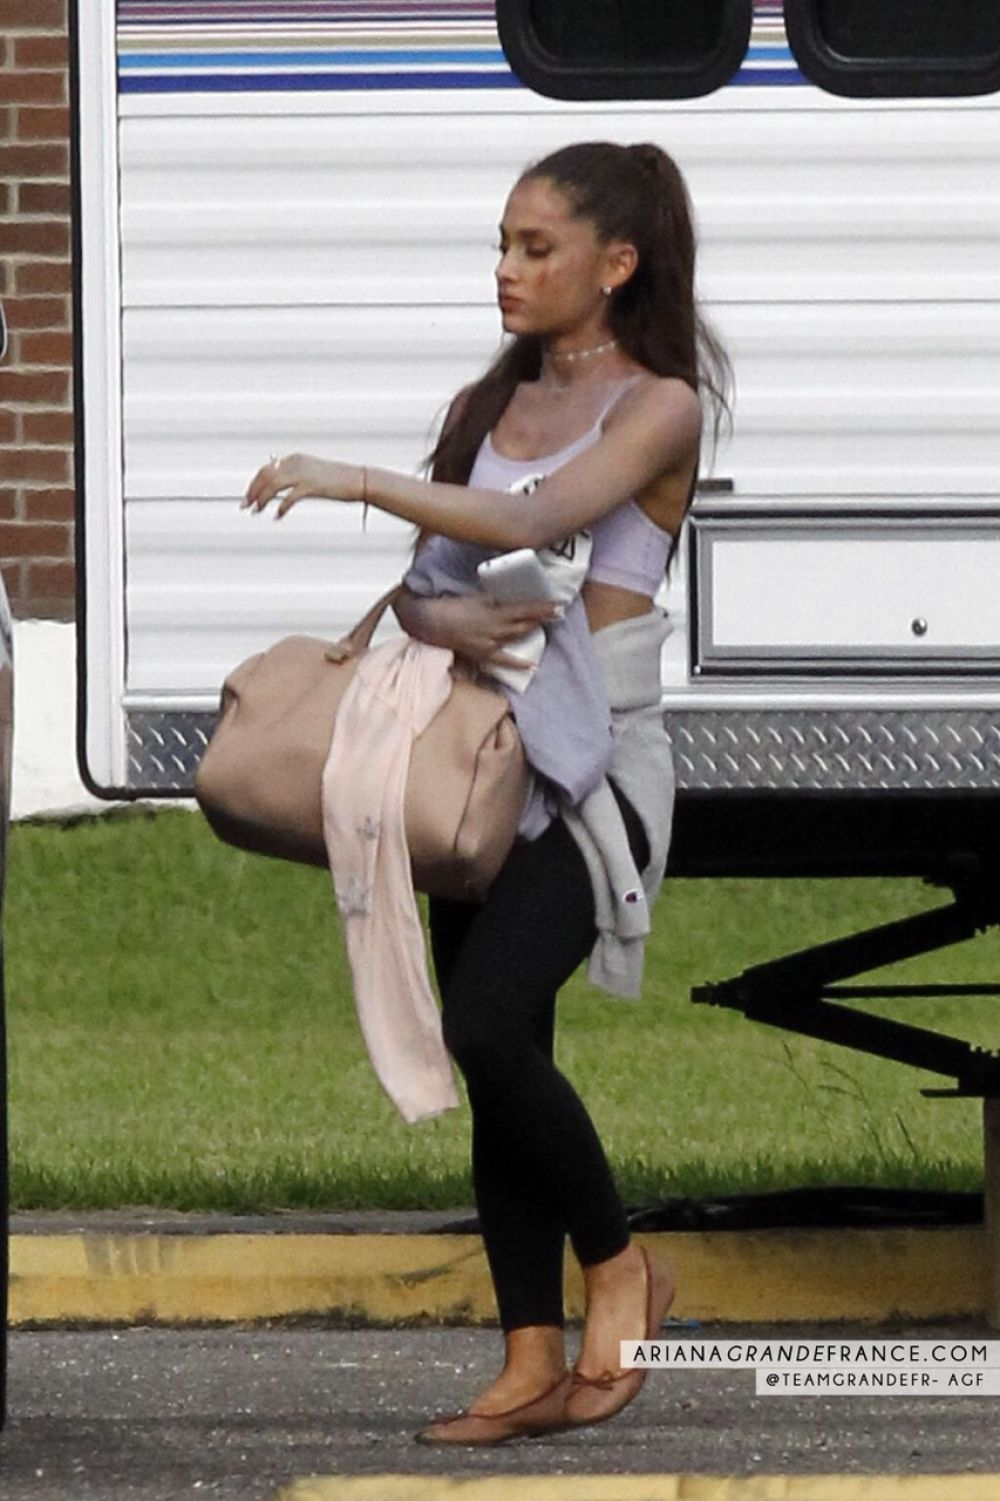 ARIANA GRANDE on the Set of Scream Queens 06/22/2015